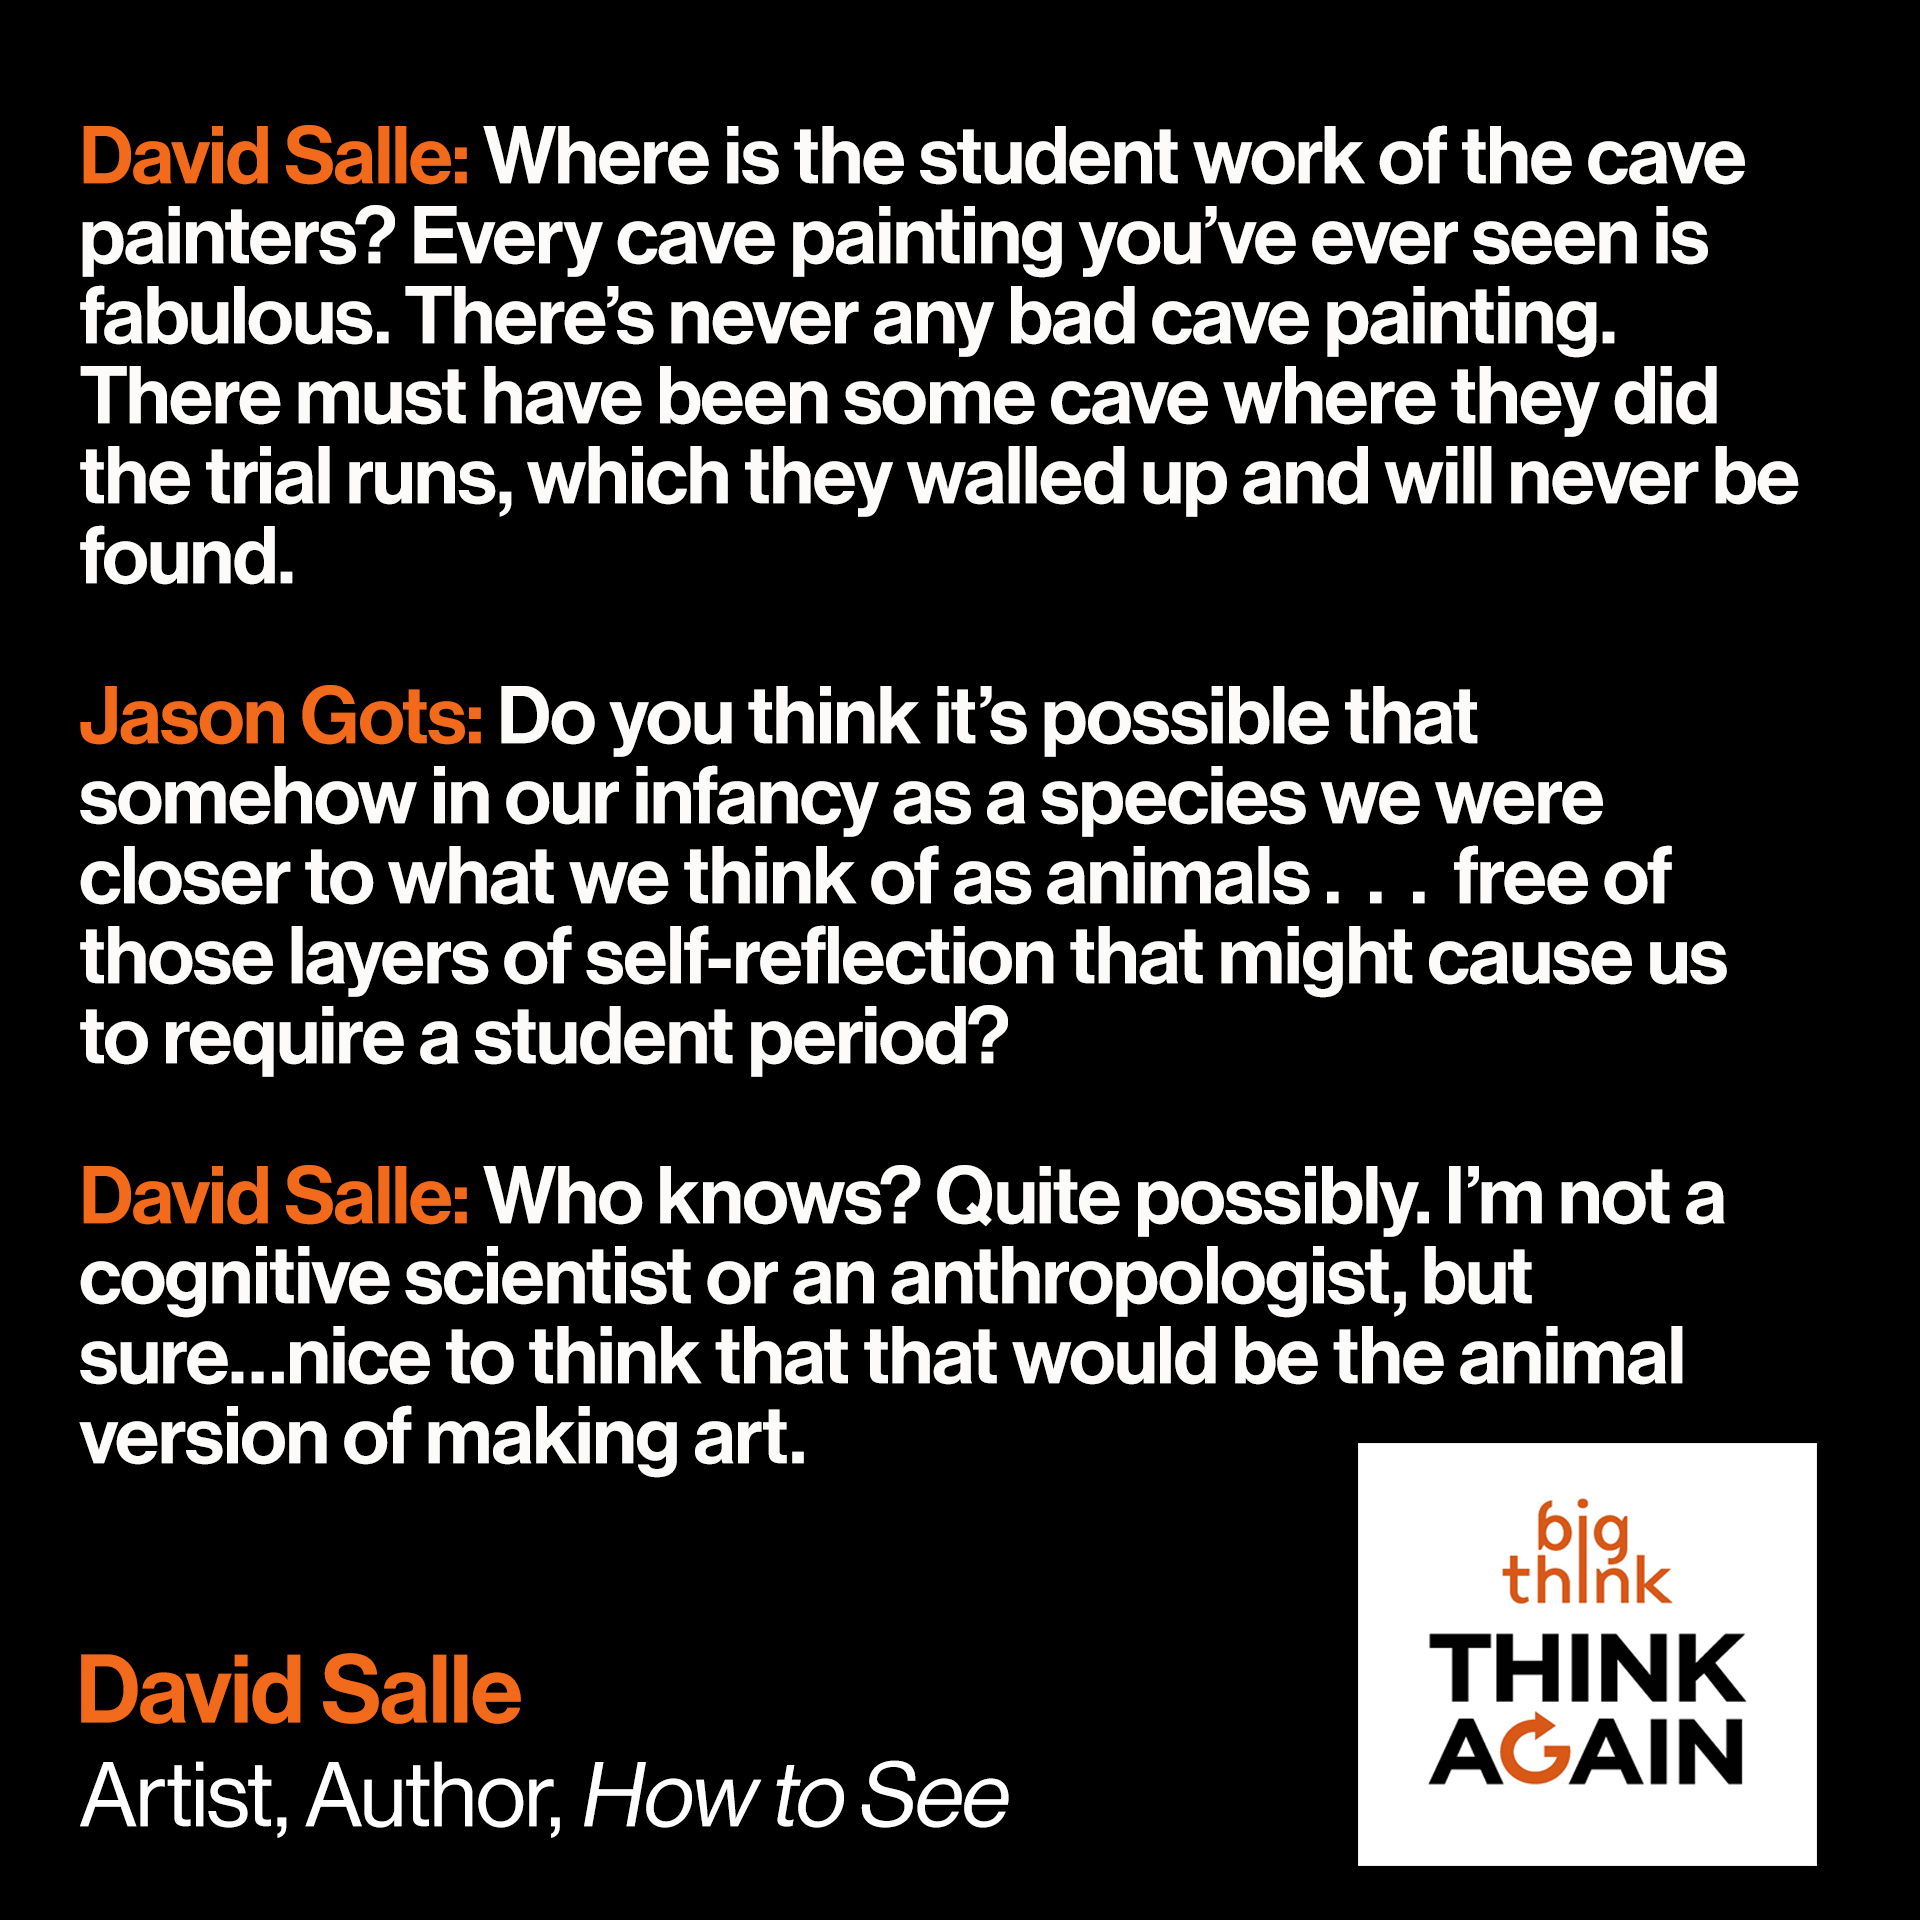 David Salle Quote: David Salle: Where is the student work of the cave painters? Every cave painting you've ever seen is fabulous. There's never any bad cave painting. There must have been some cave where they did the trial runs, which they walled up and will never be found.   Jason Gots: Do you think it's possible that somehow in our infancy as a species we were closer to what we think of as animals, even though we are animals of course . . . free of those layers of self-reflection that might cause us to require a student period?   David Salle: Who knows? Quite possibly. I'm not a cognitive scientist or an anthropologist, but sure…nice to think that that would be the animal version of making art.